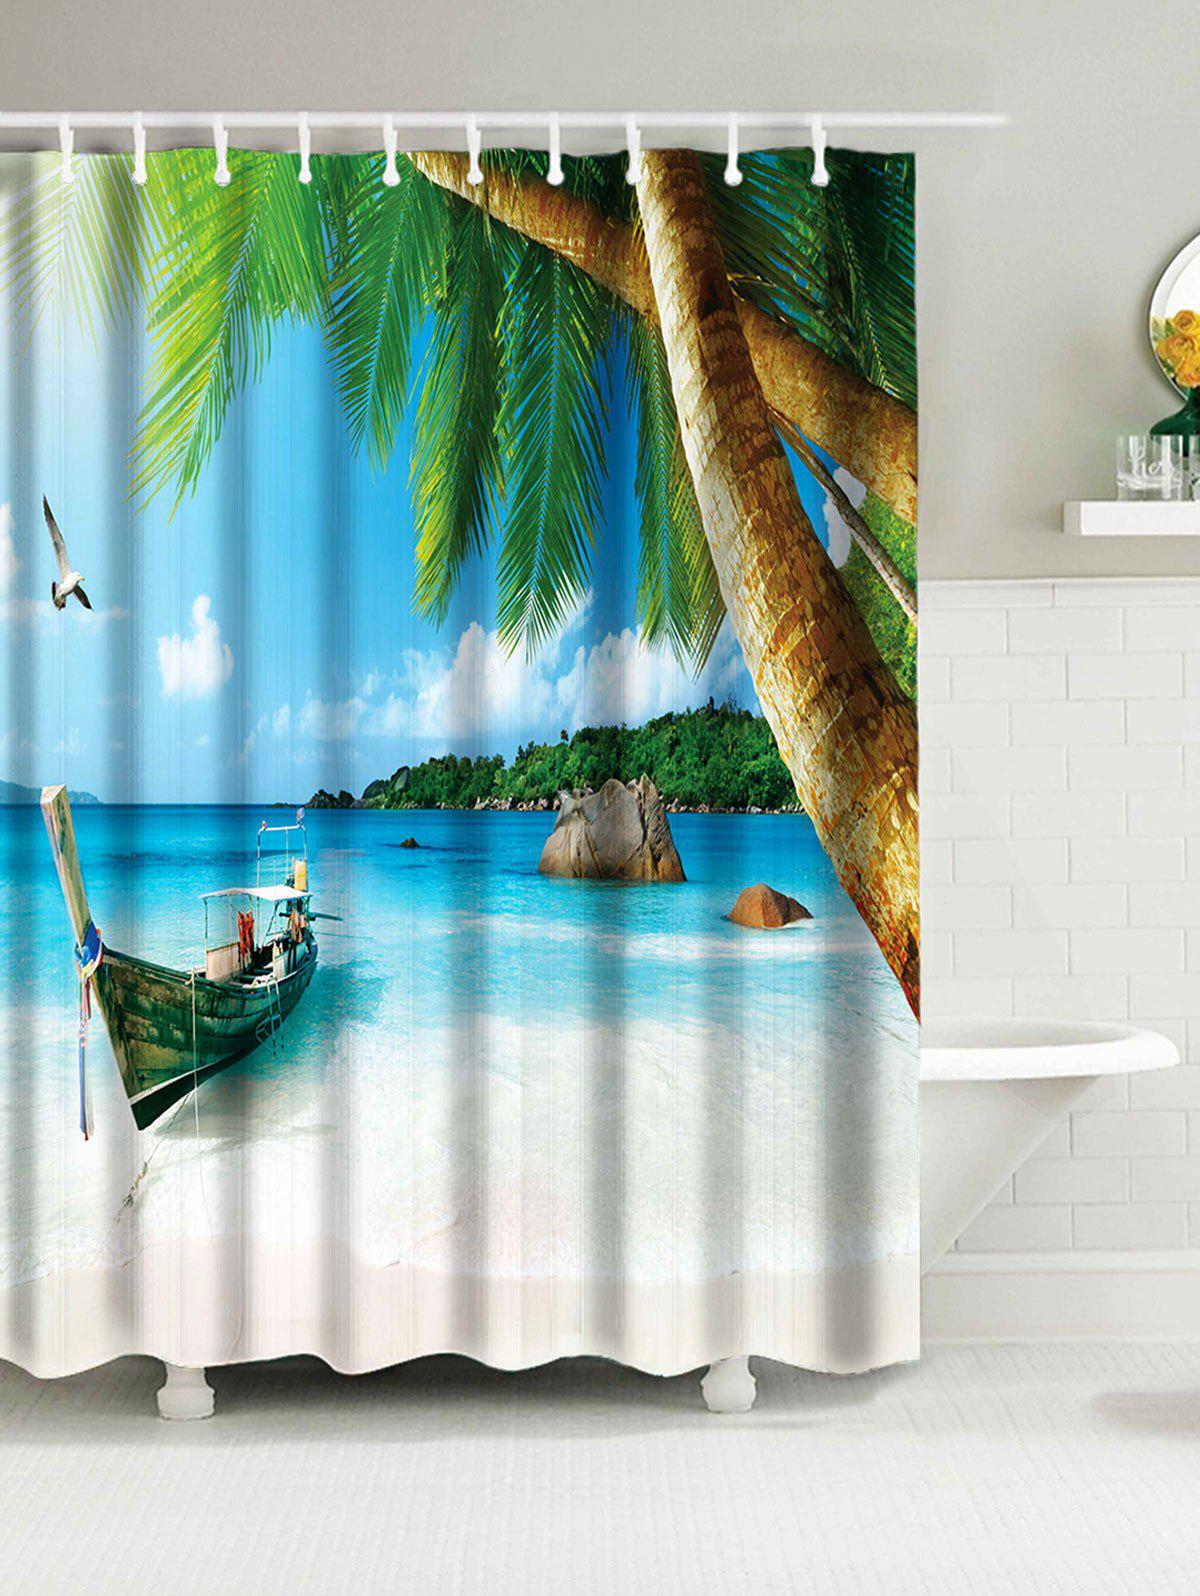 Beach Window Curtains Part - 48: Hawaii Beach Print Waterproof Bathroom Shower Curtain - SKY BLUE W59 INCH *  L71 INCH